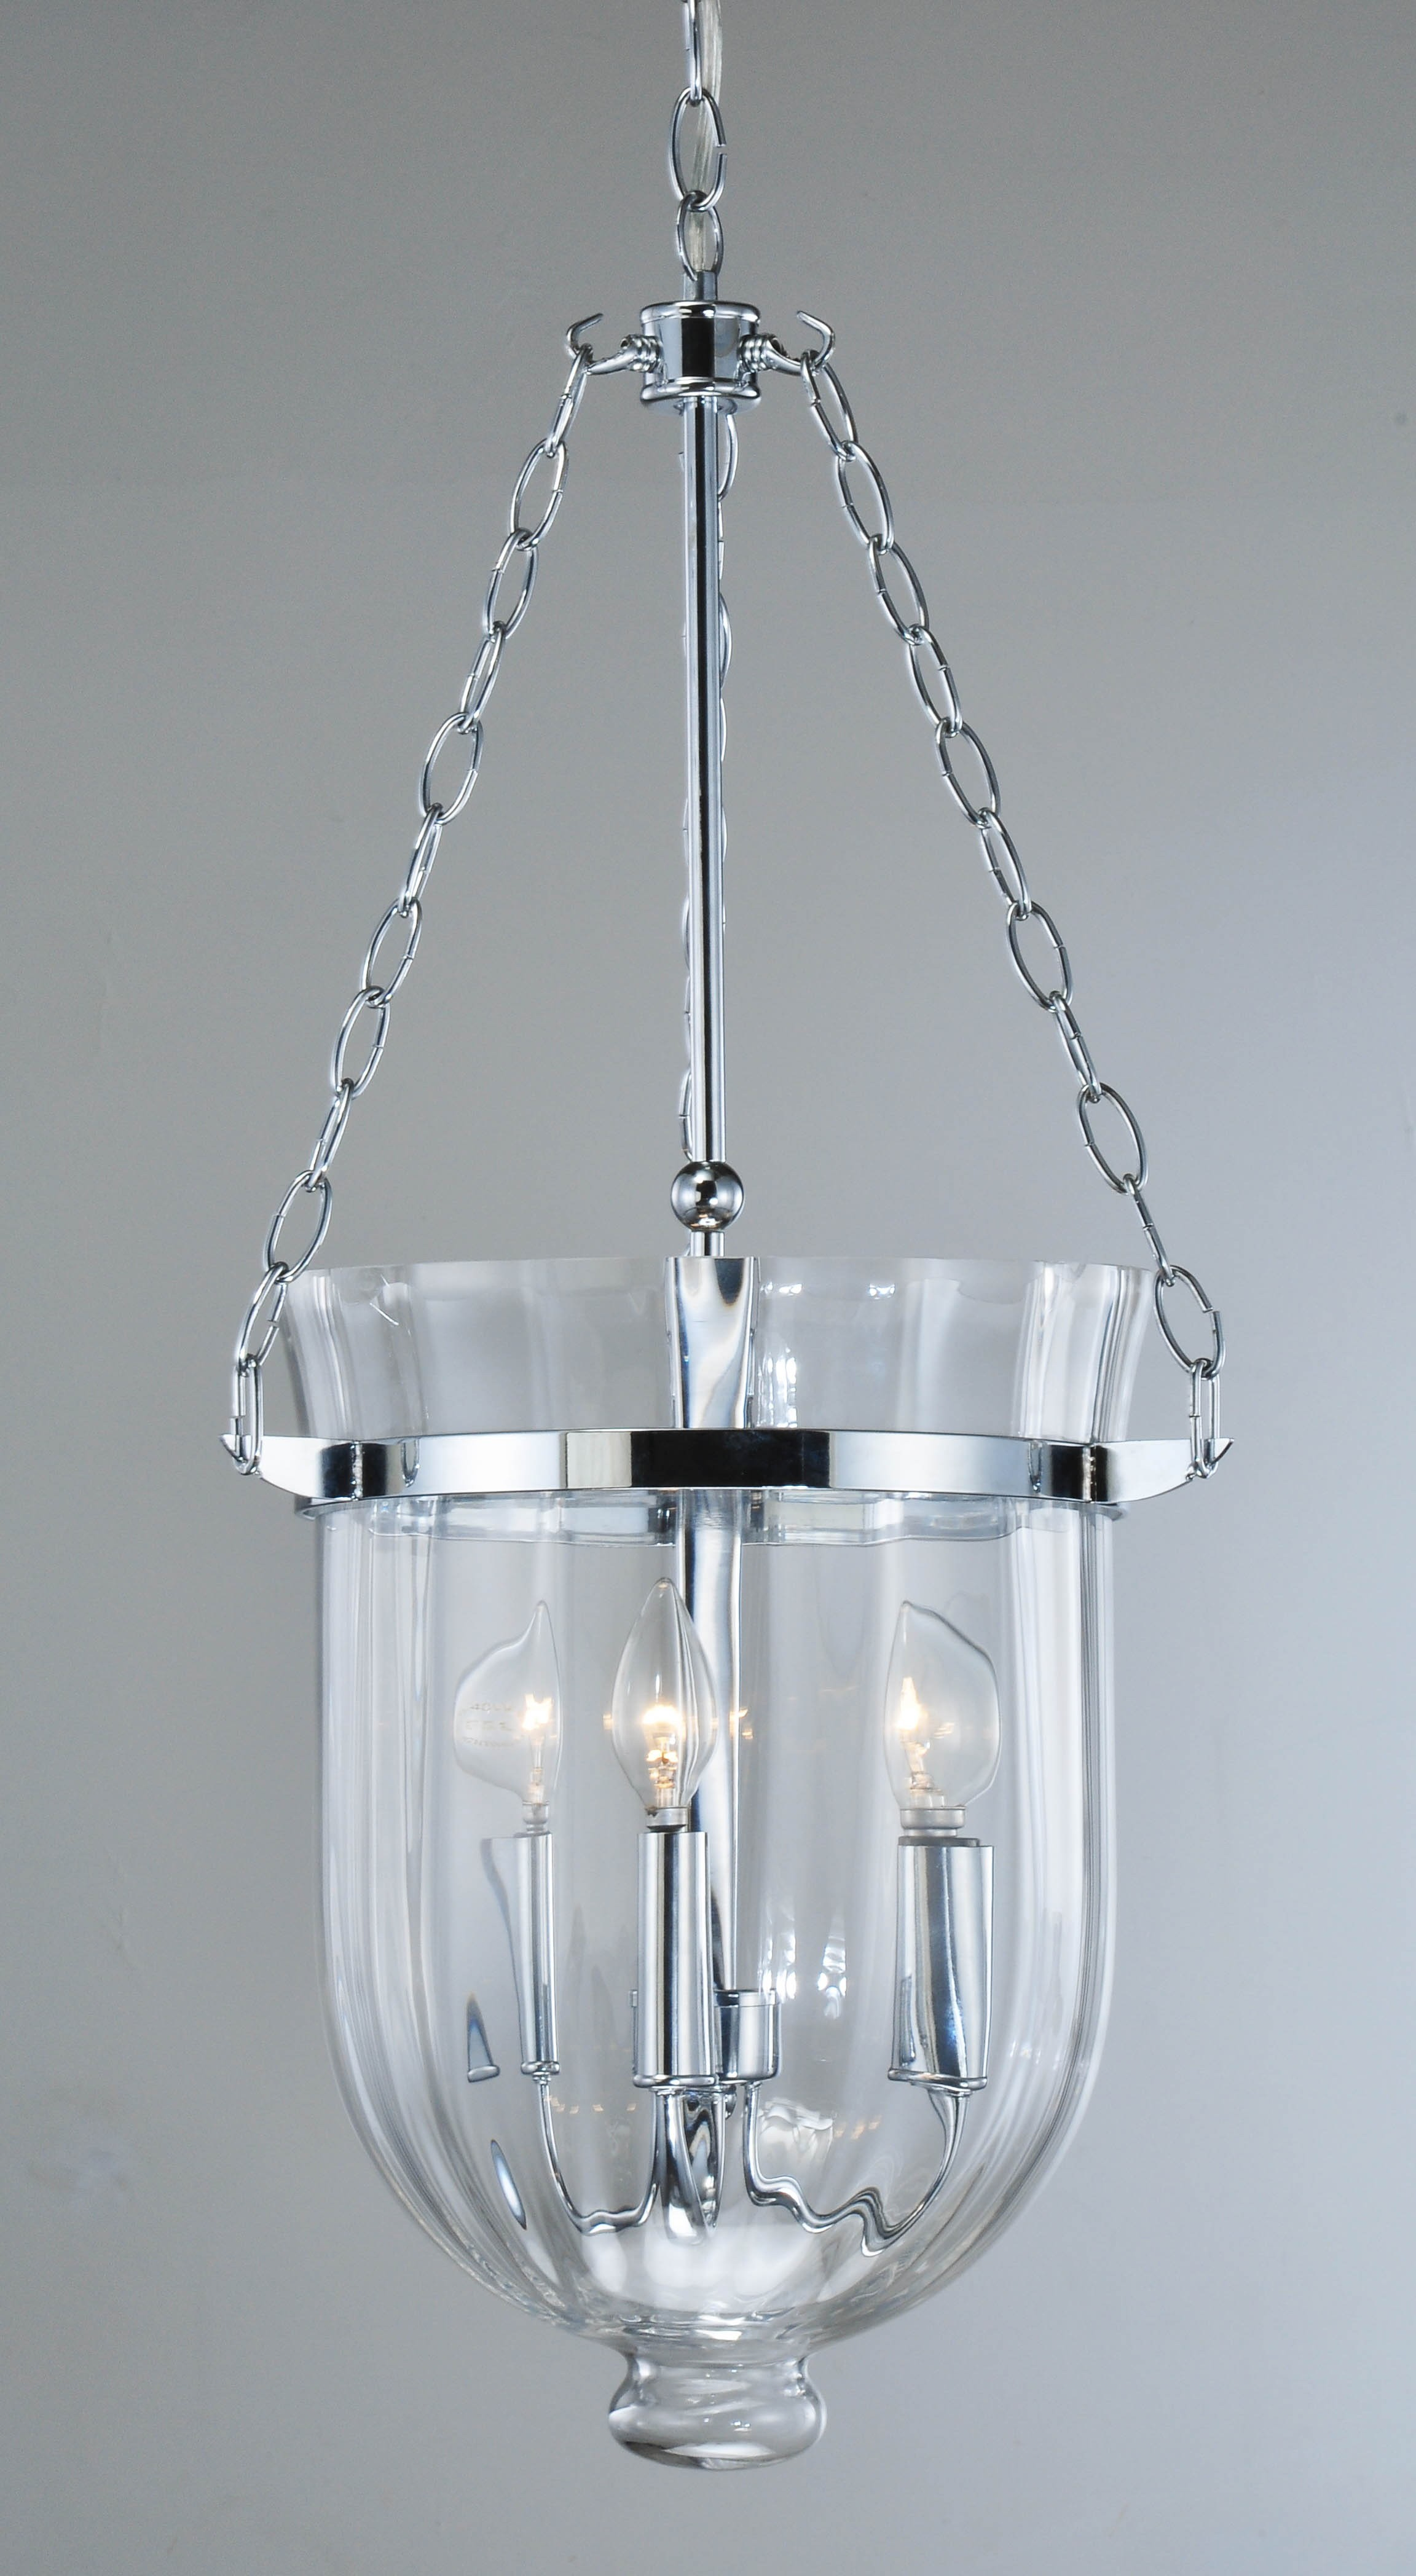 Jocelyn 3 Lights Chrome Finish Ribbed Glass Lantern Chandelier 11 5 Wx15 H Kph 1c